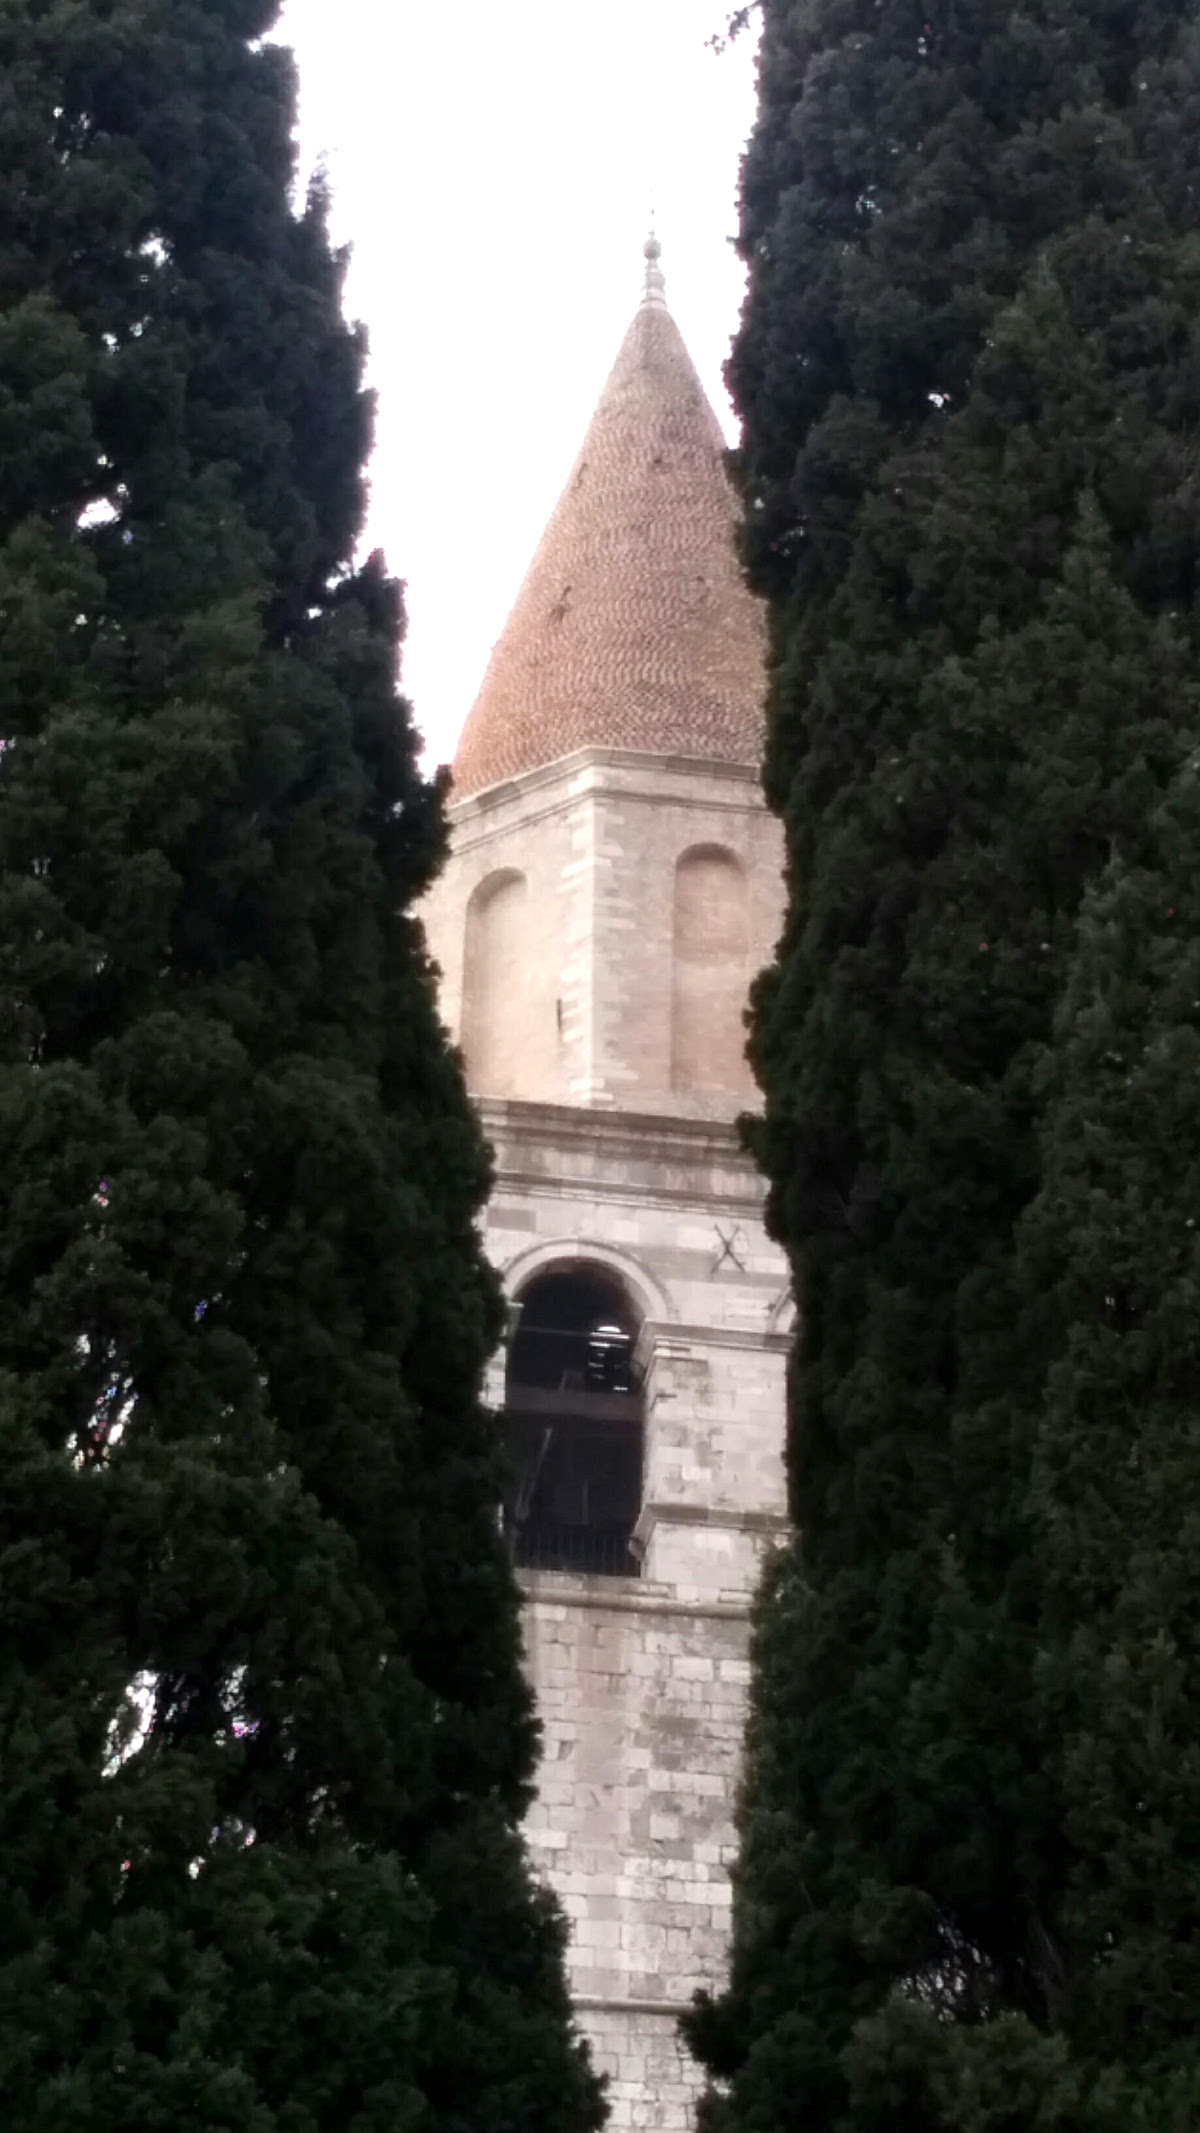 The Bell Tower of Aquileia